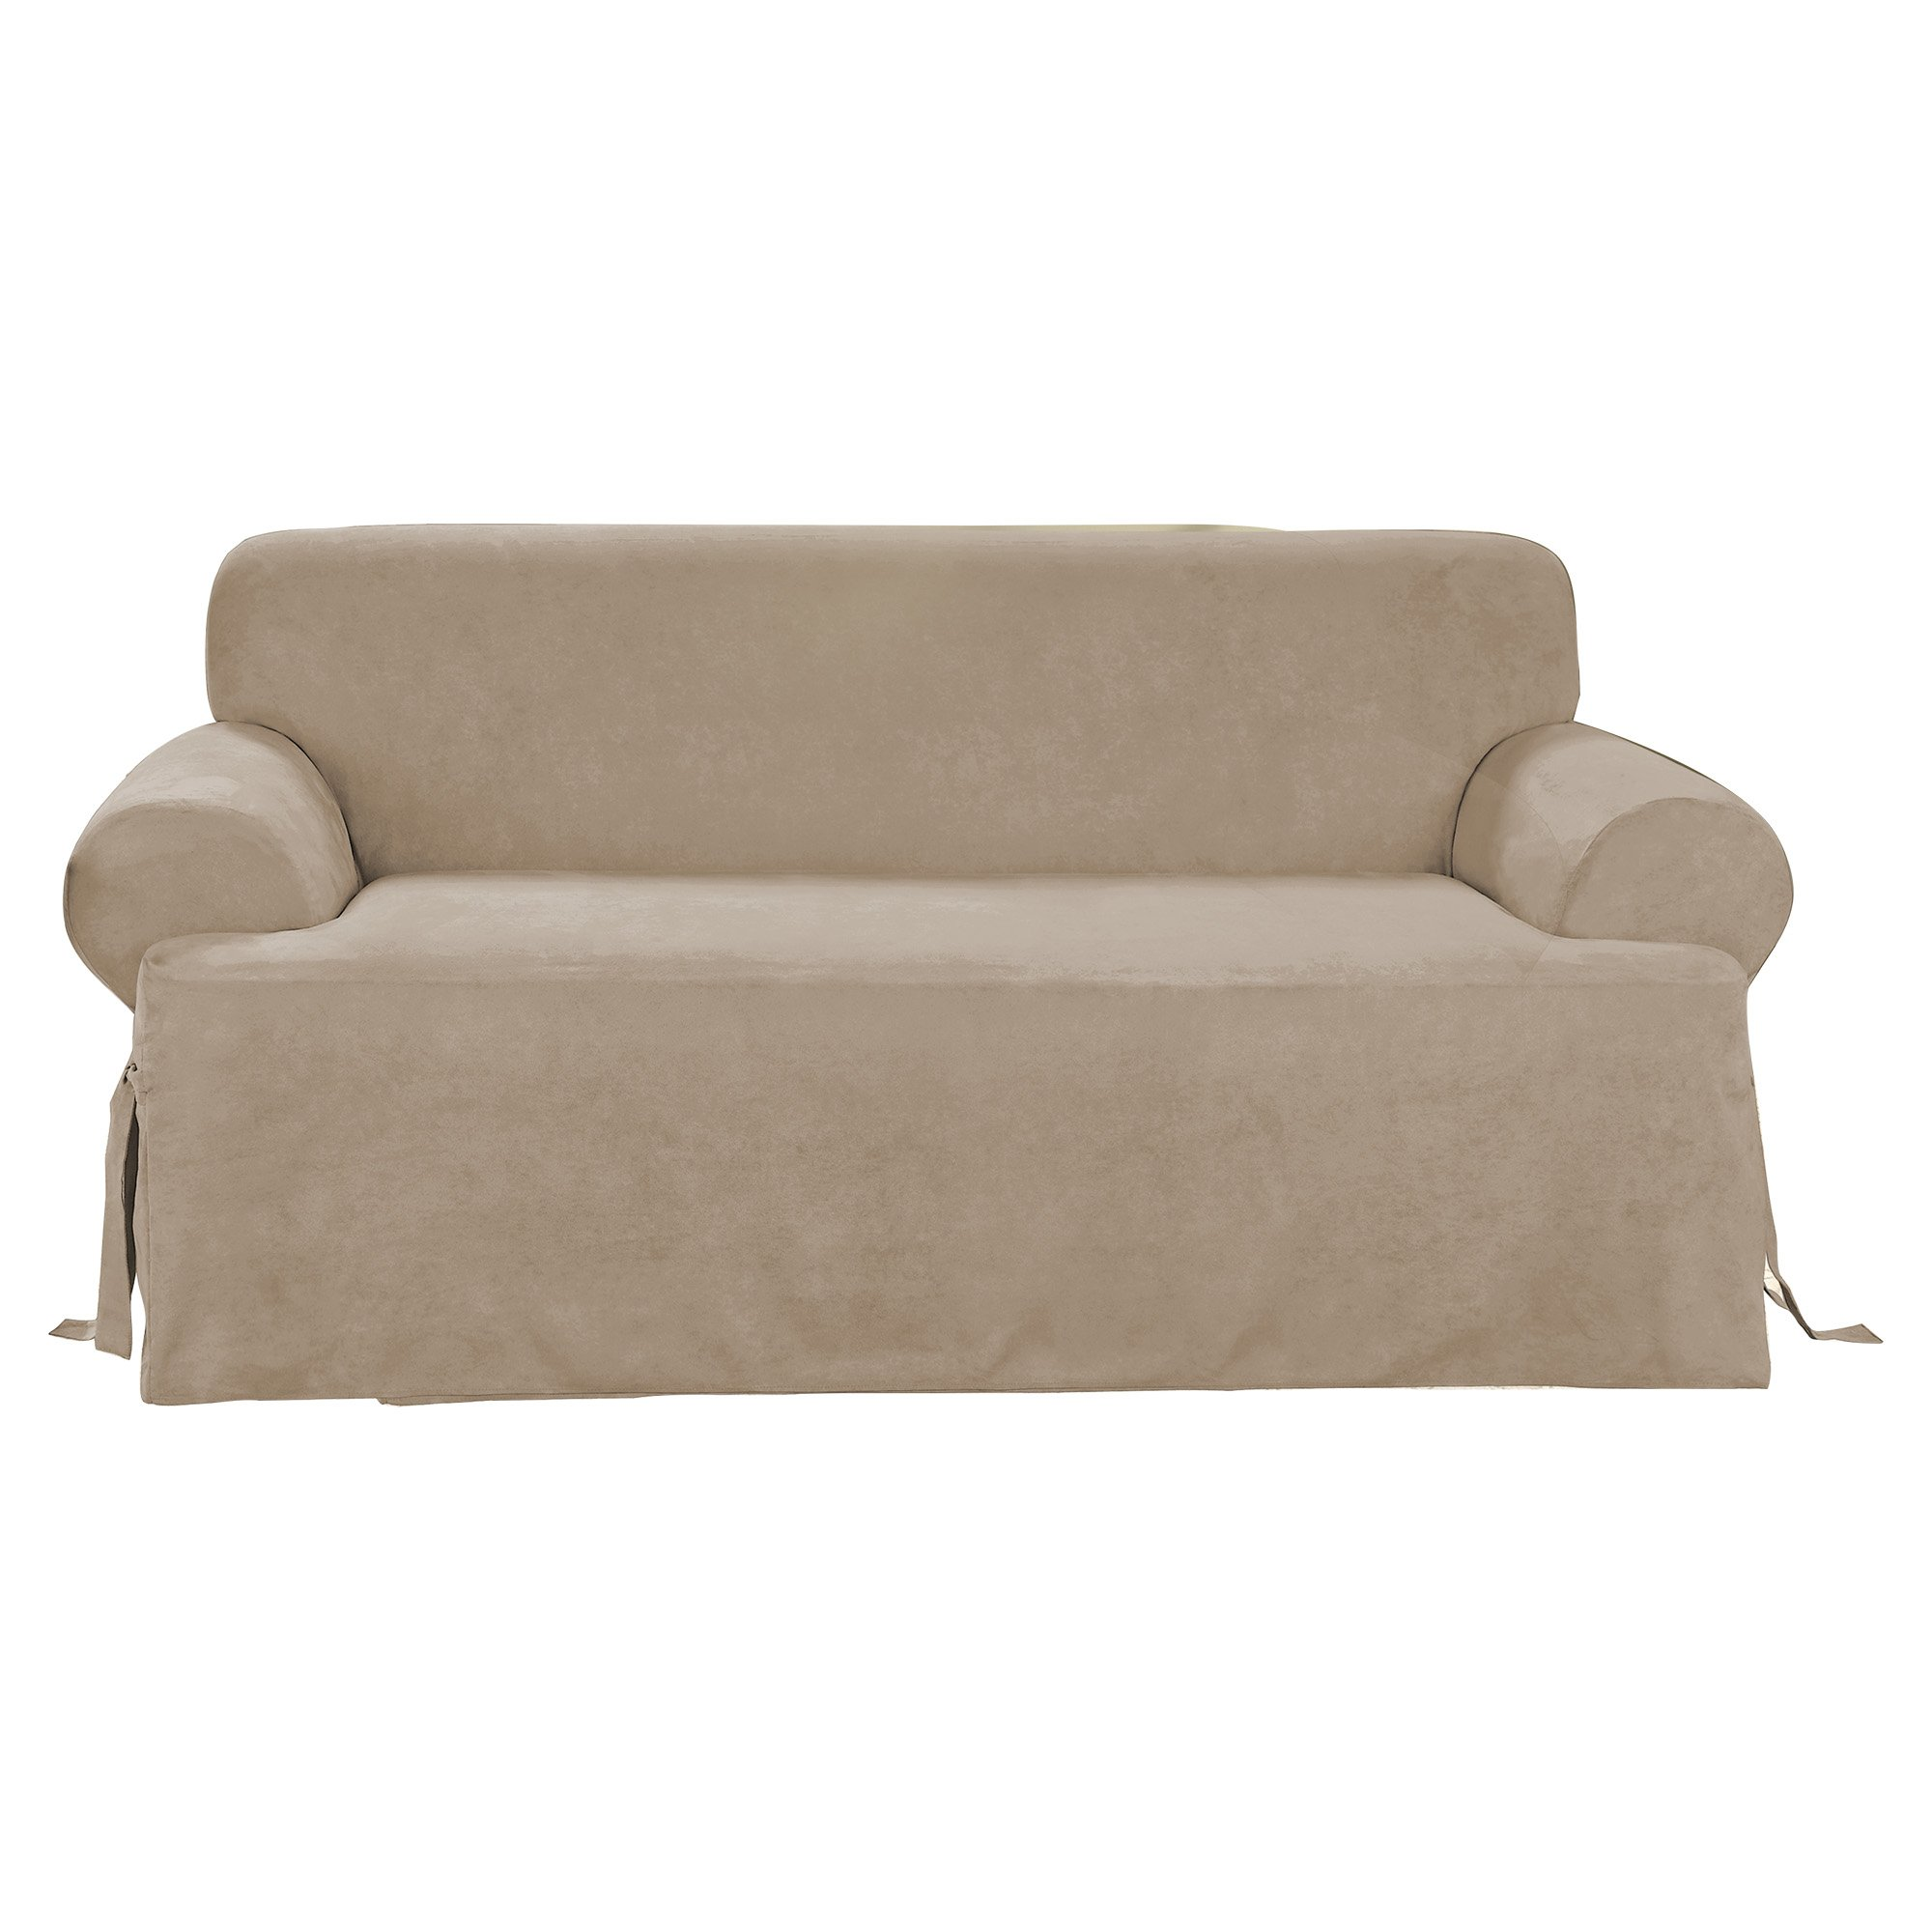 Sure Fit Soft Suede T-Cushion - Sofa Slipcover - Taupe (SF38650) by Surefit